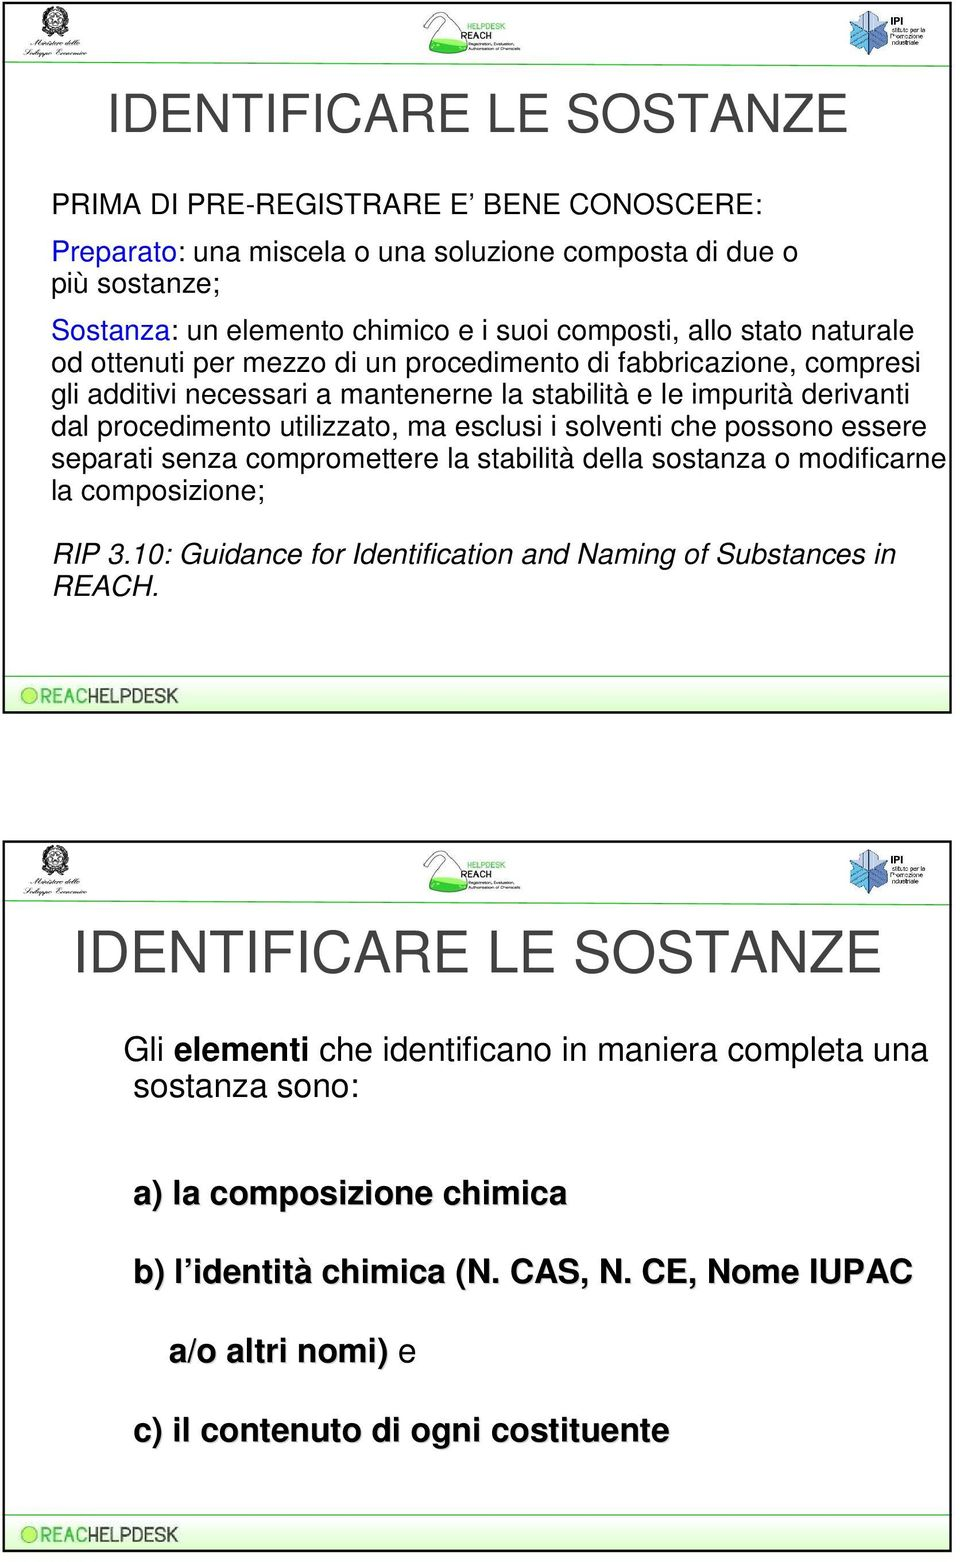 solventi che possono essere separati senza compromettere la stabilità della sostanza o modificarne la composizione; RIP 3.10: Guidance for Identification and Naming of Substances in REACH.